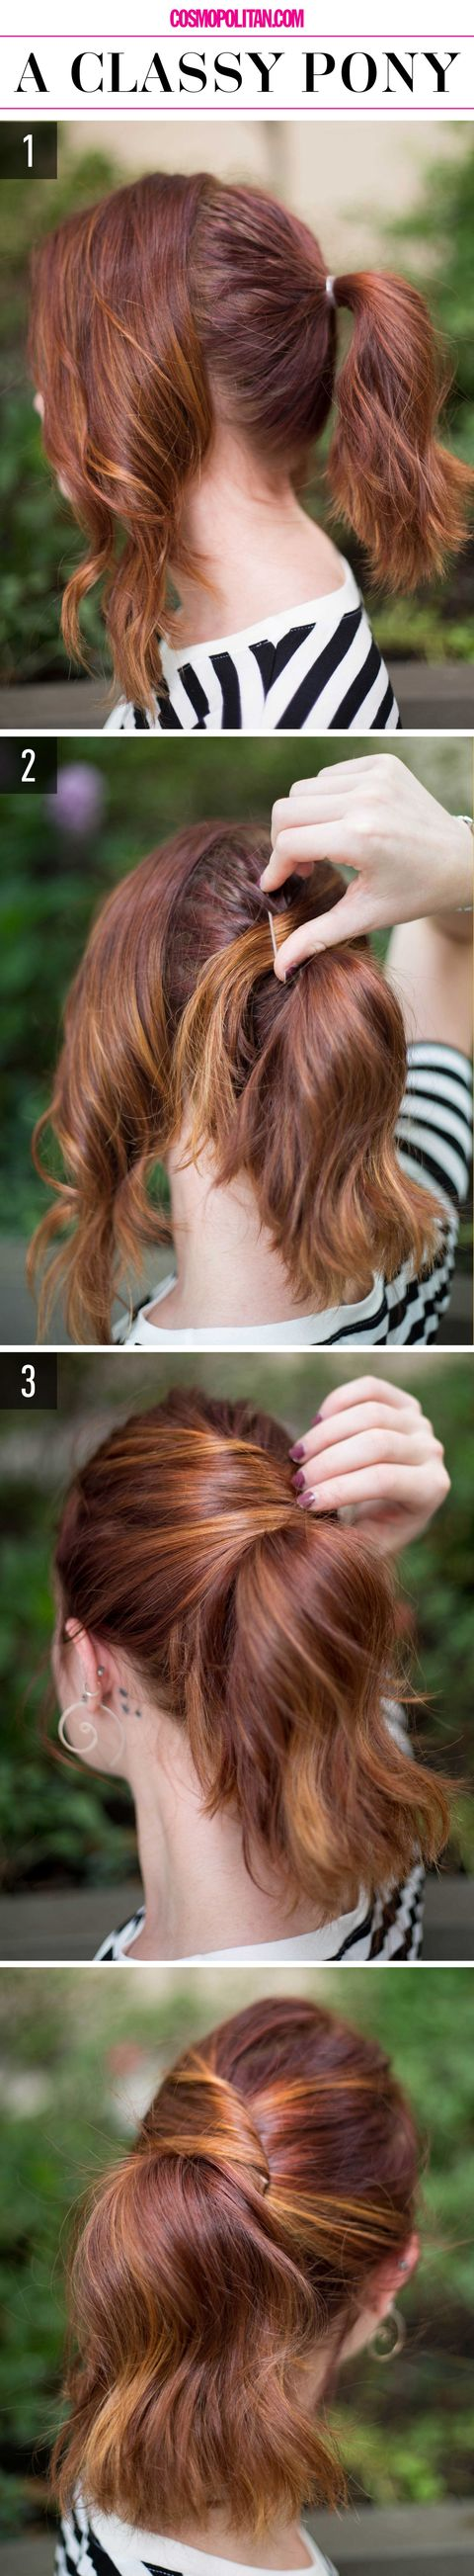 15 super easy hairstyles for 2018  three step hairstyles